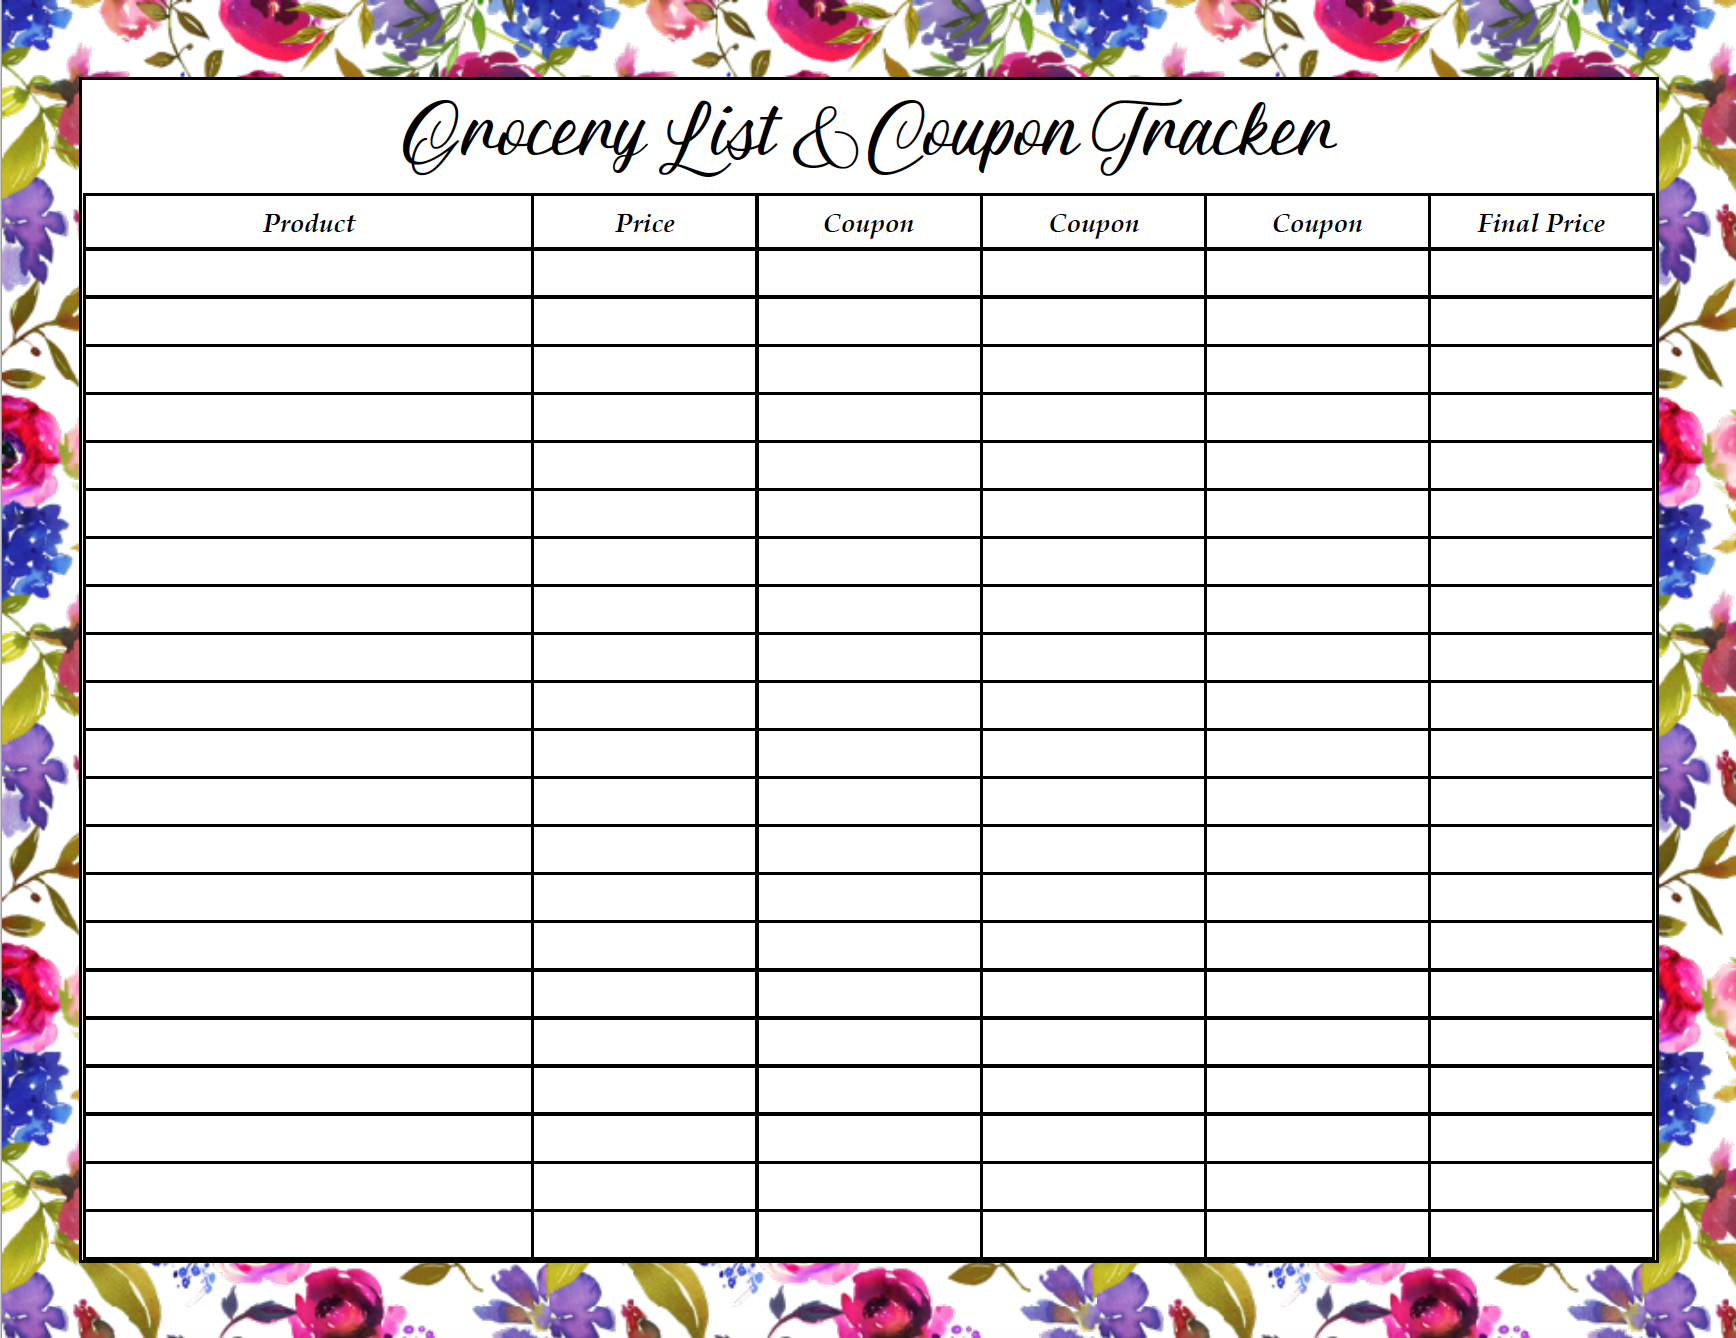 Free printable grocery list and coupon tracker.